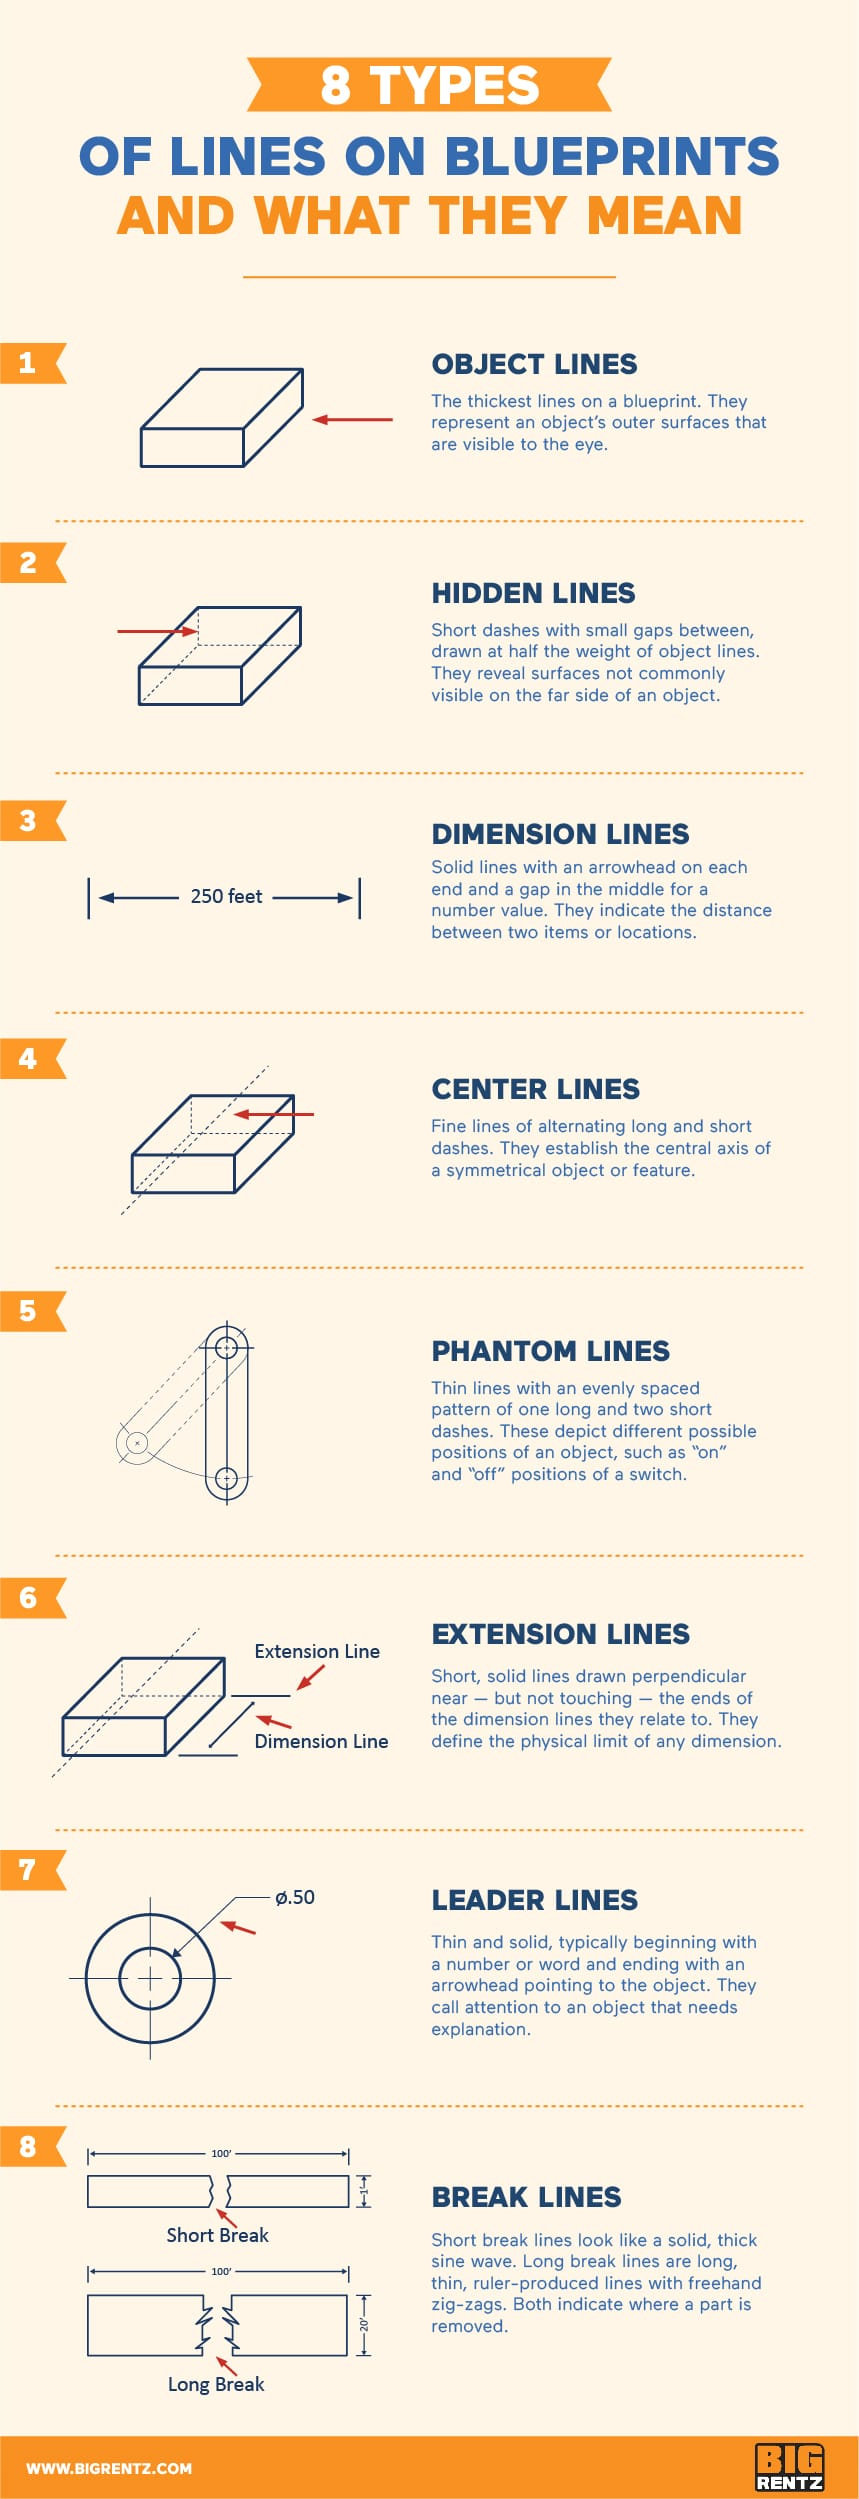 8 Types of Lines on Blueprints and What They Mean